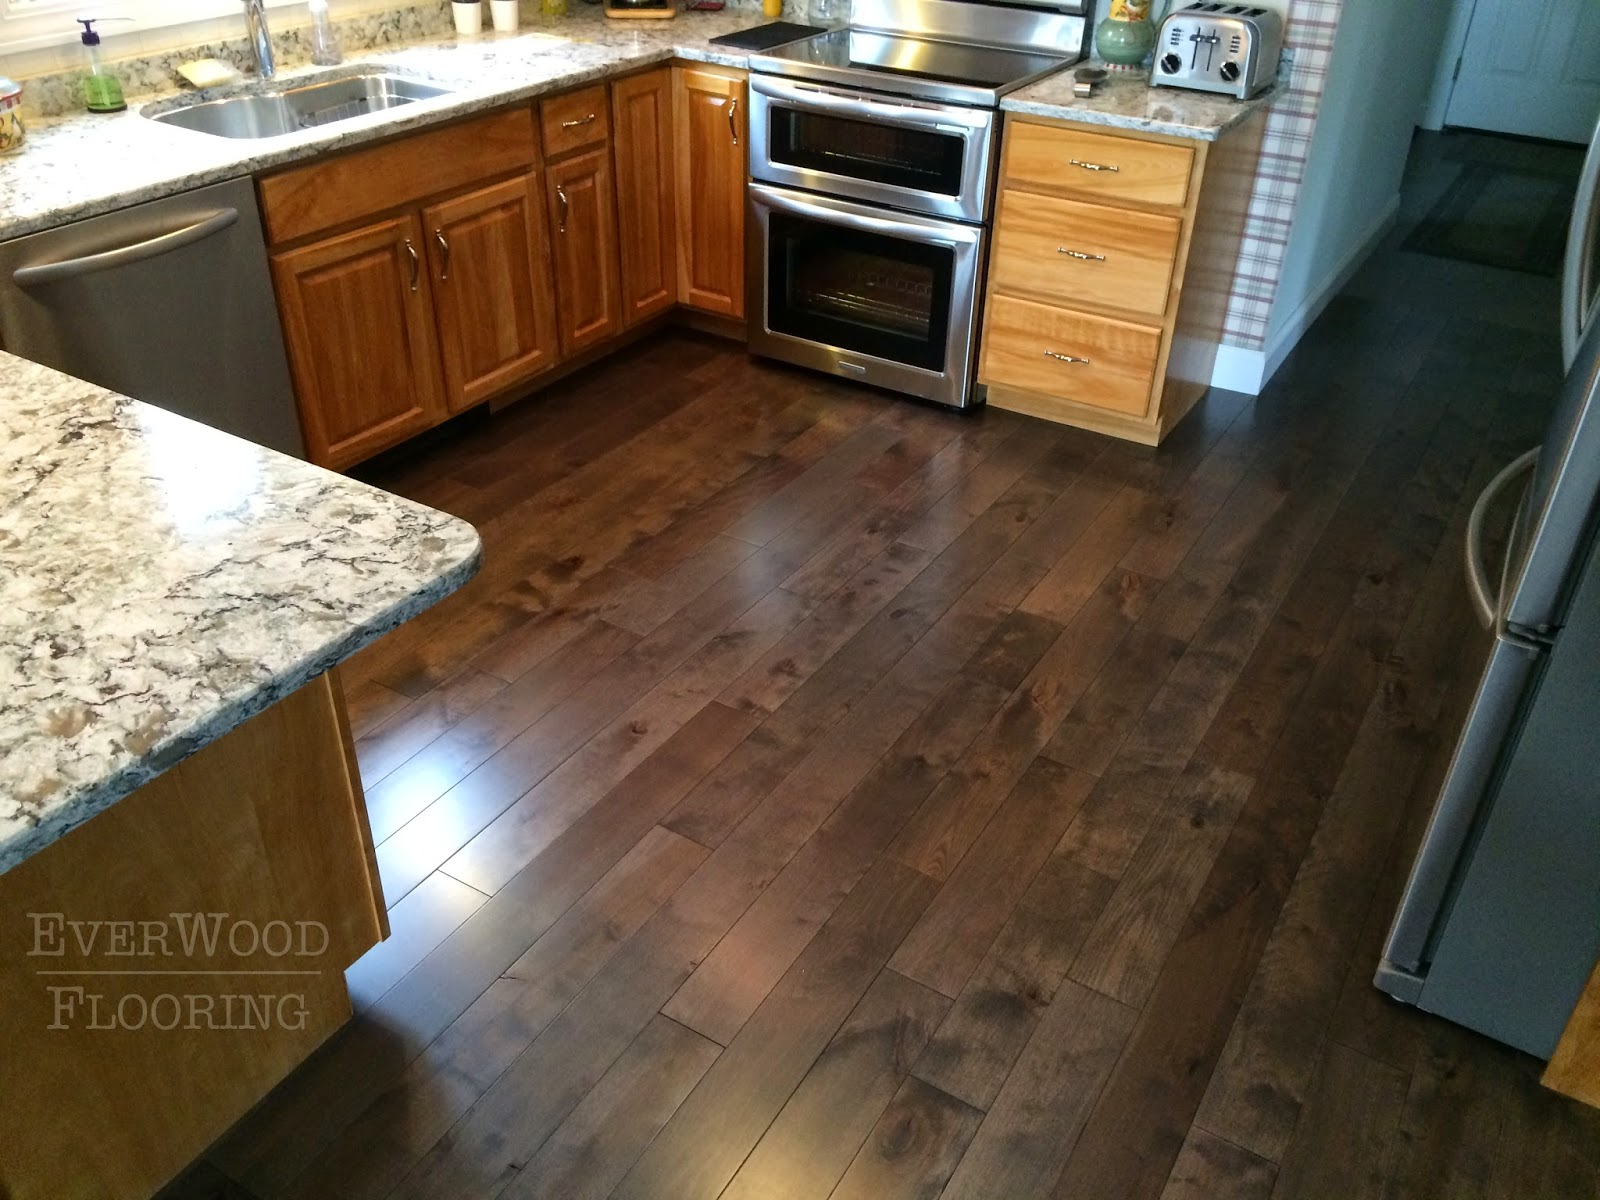 Everwood flooring project profiles prefinished birch wood for Kitchen flooring installation